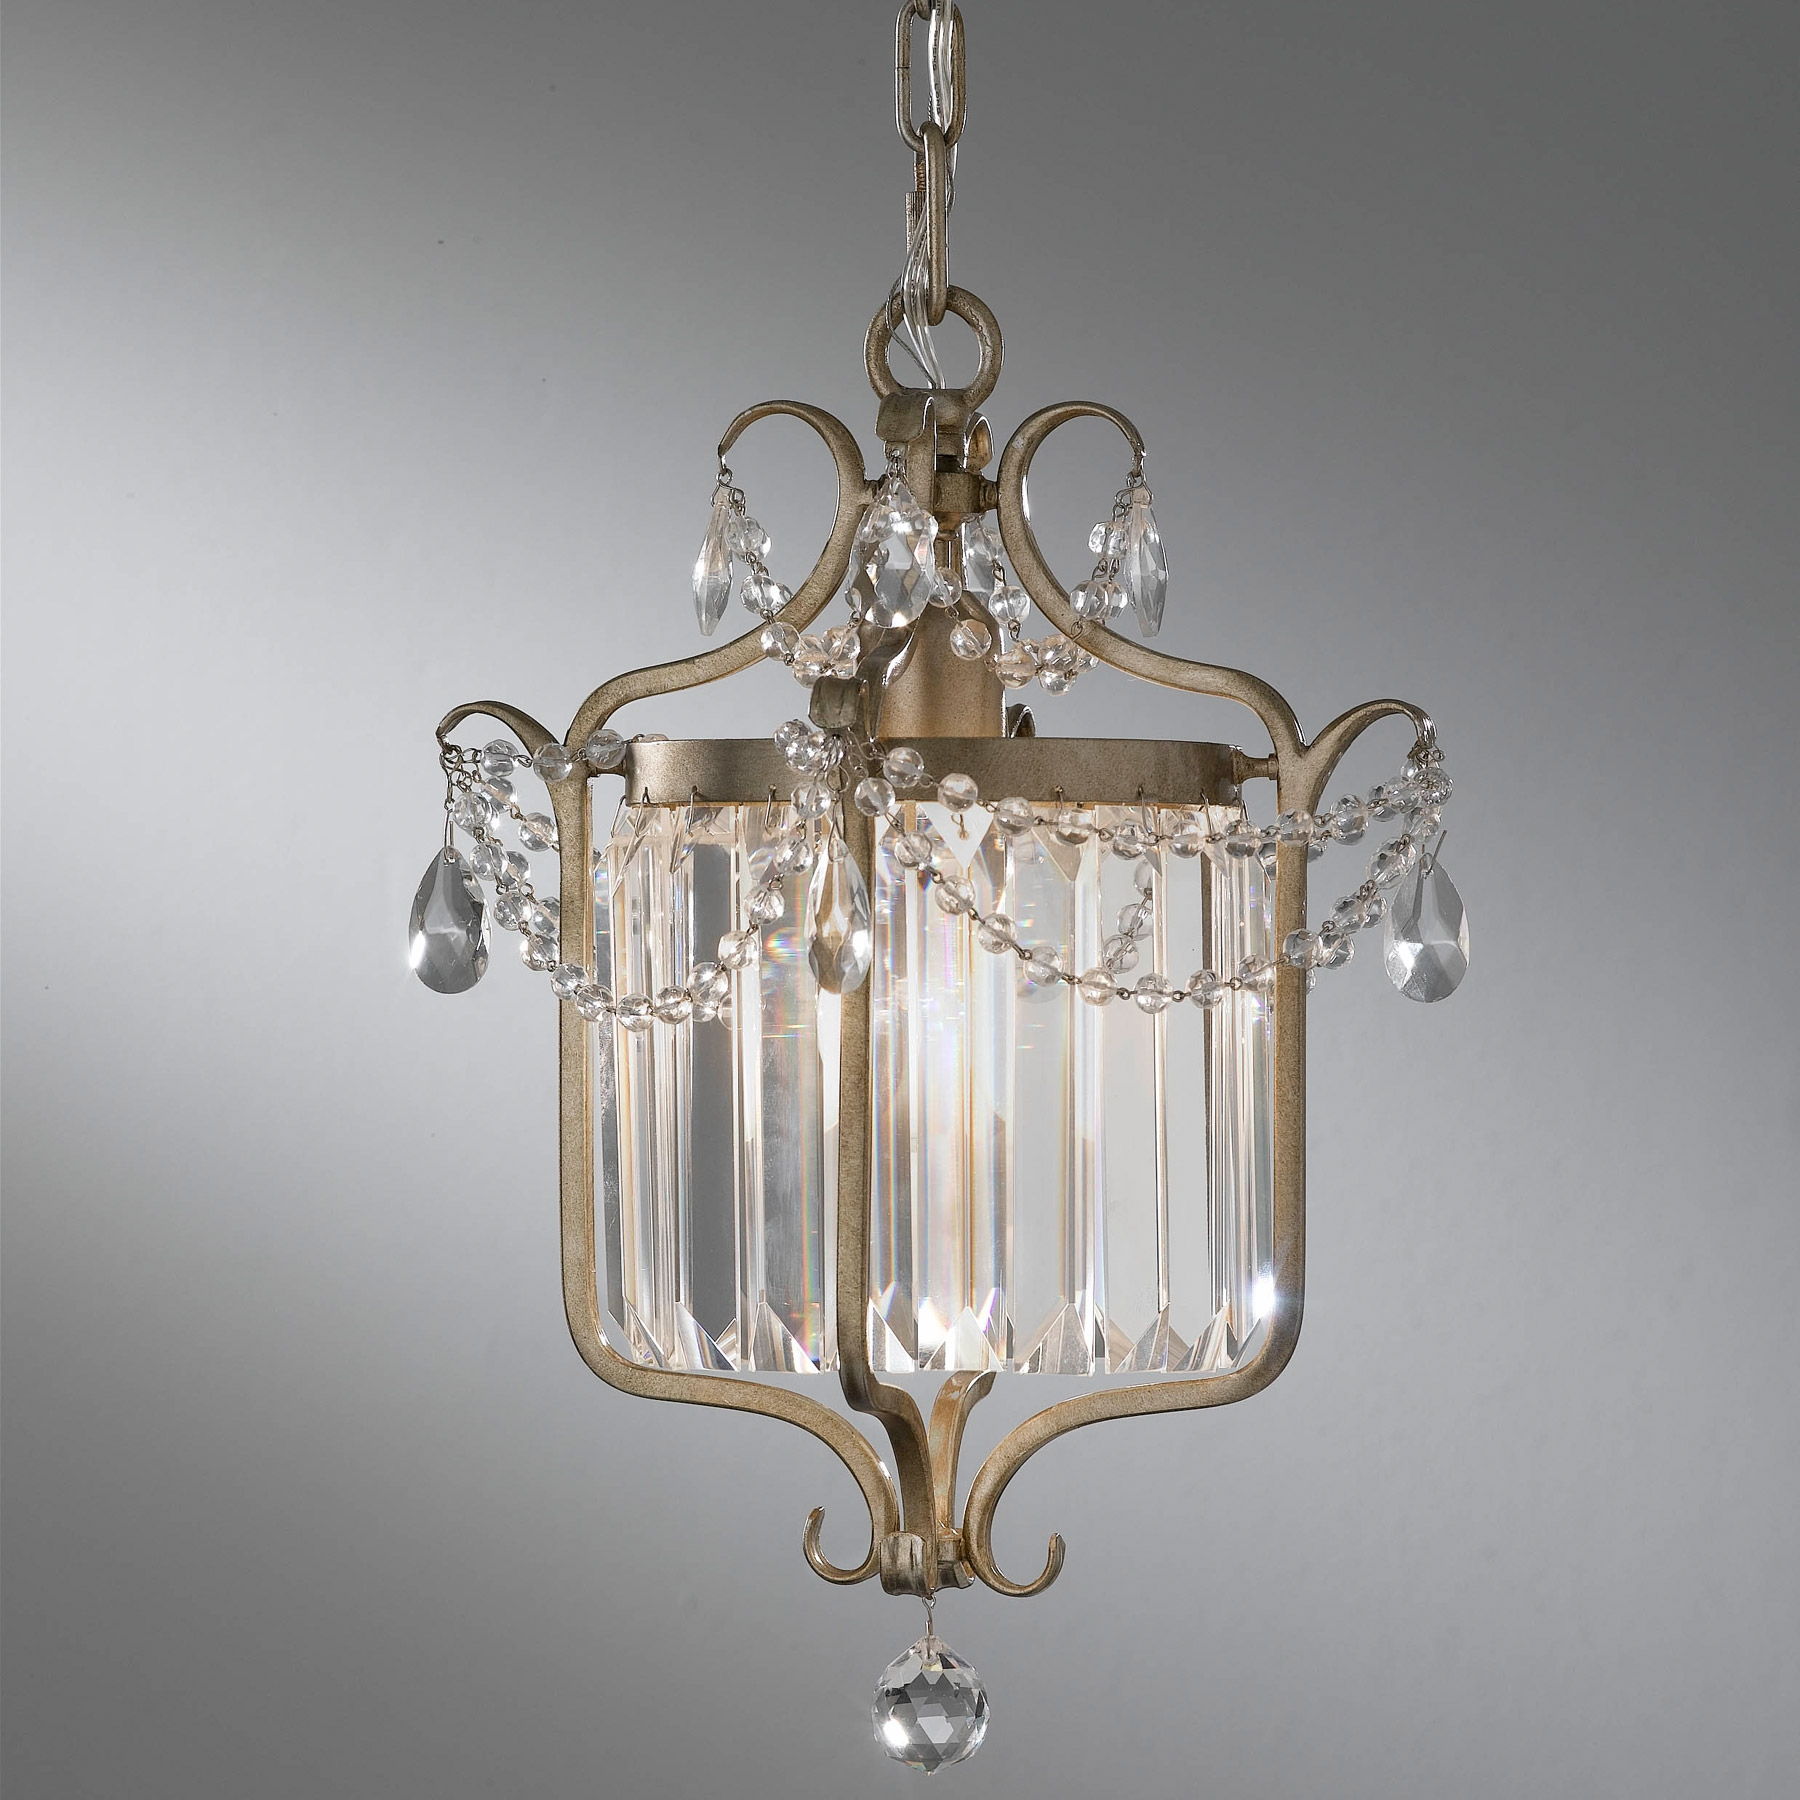 Feiss F24731gs Crystal Gianna Mini Chandelier Regarding Gianna Mini Chandeliers (Image 2 of 25)